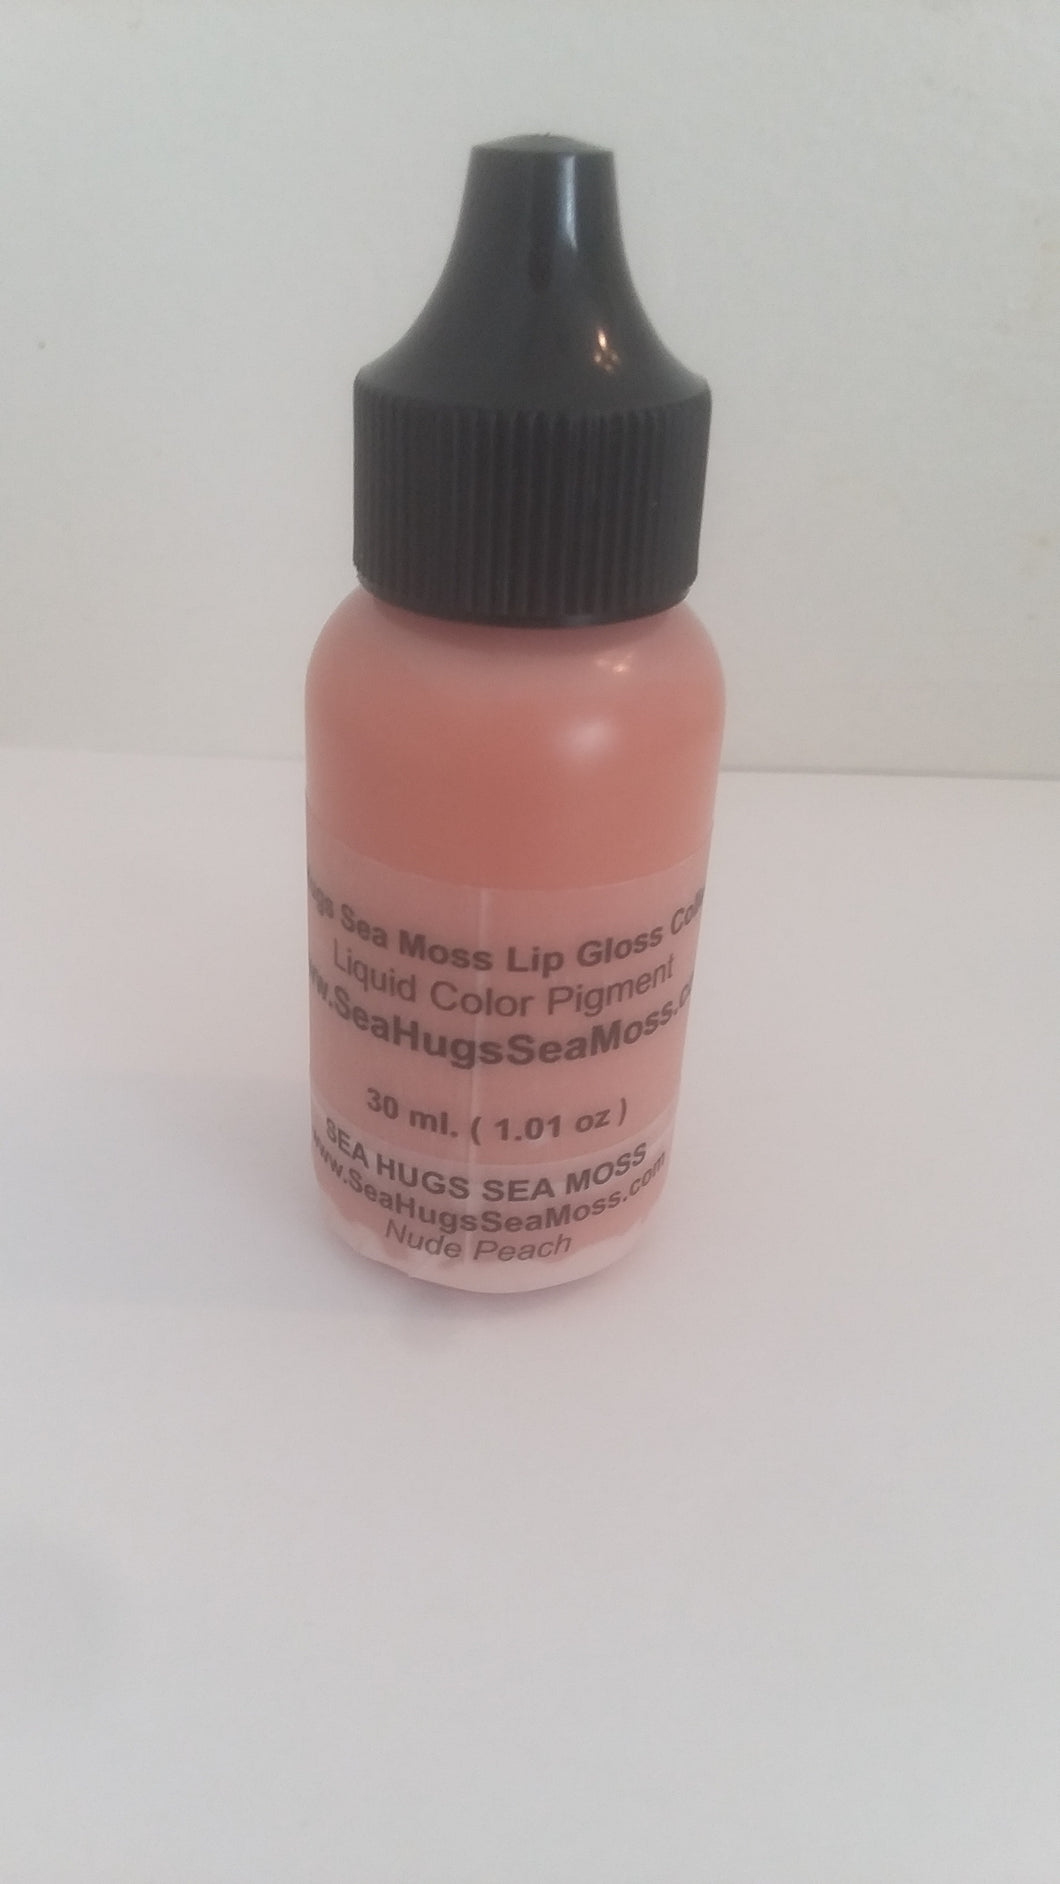 Highly Concentrated Liquid Color Pigment Colorants for Lip Gloss Making